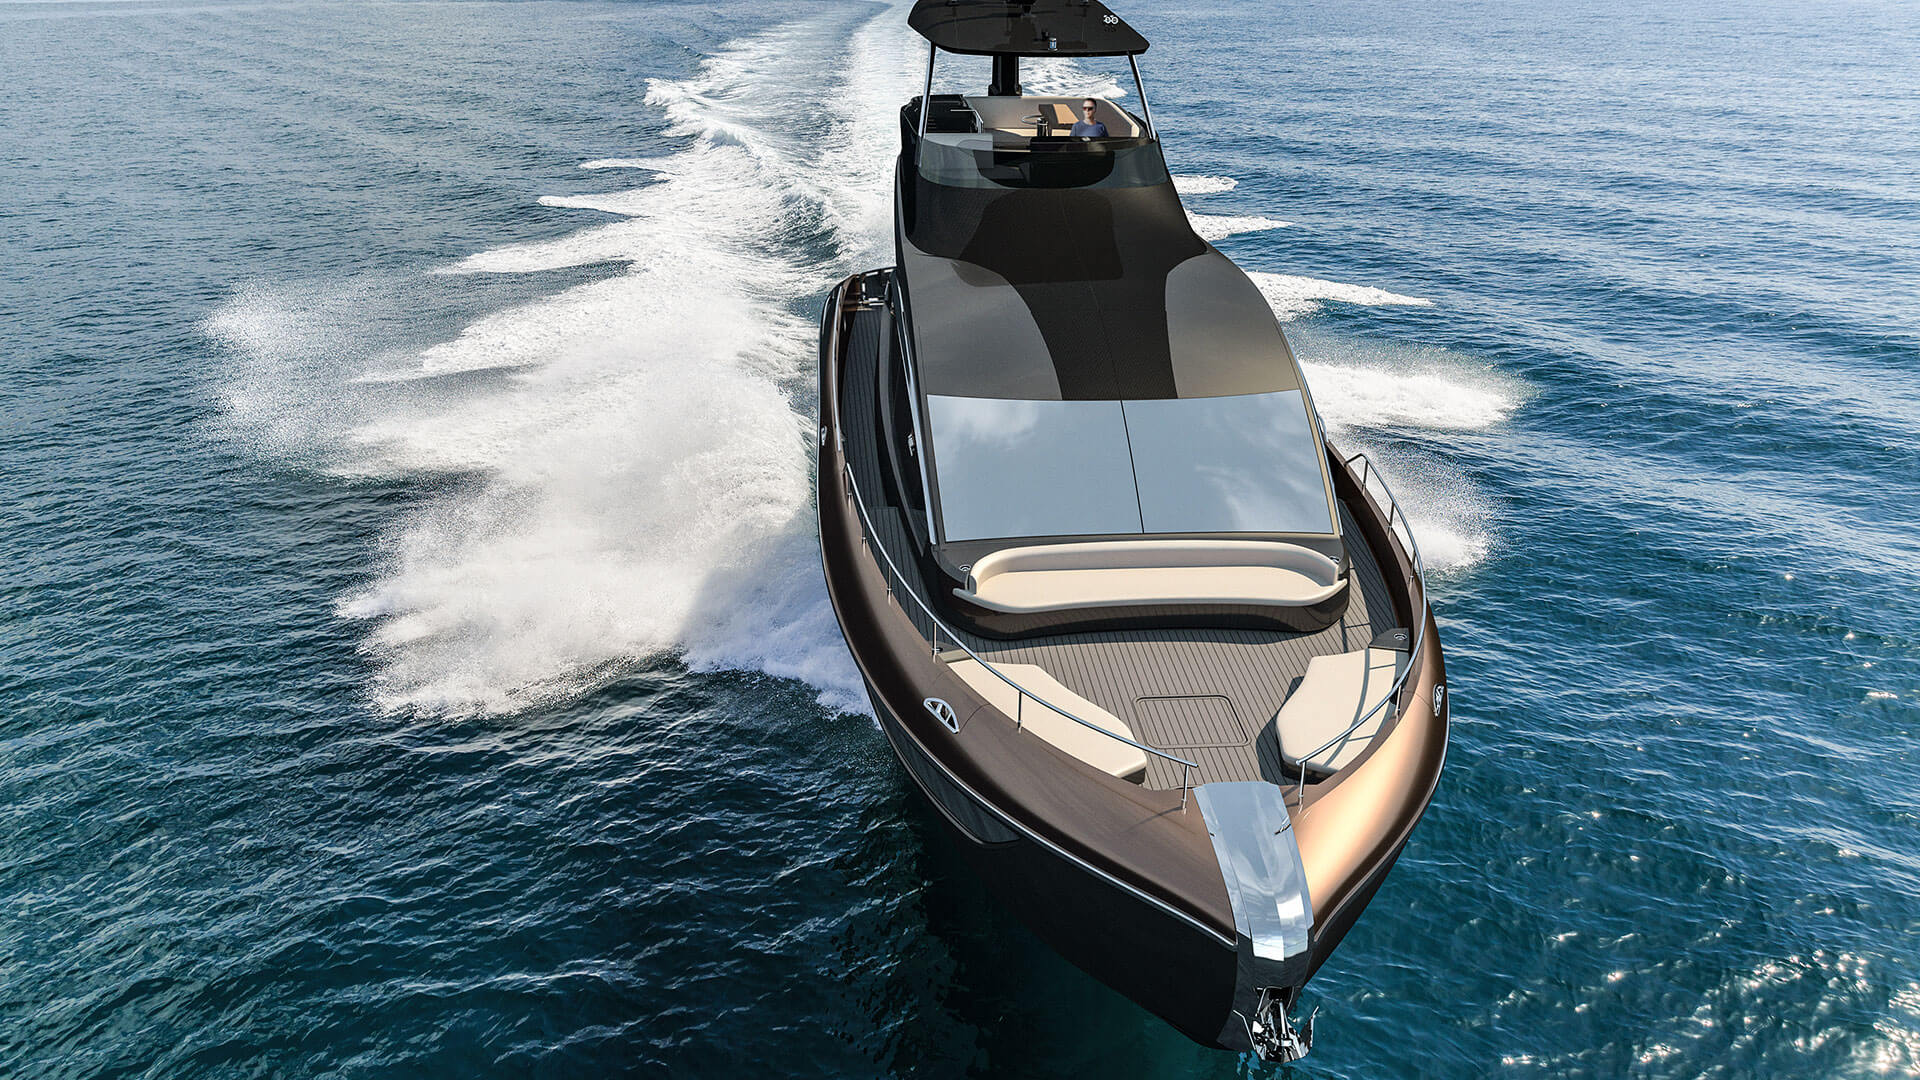 2019 lexus ly 650 luxury yacht gallery 03